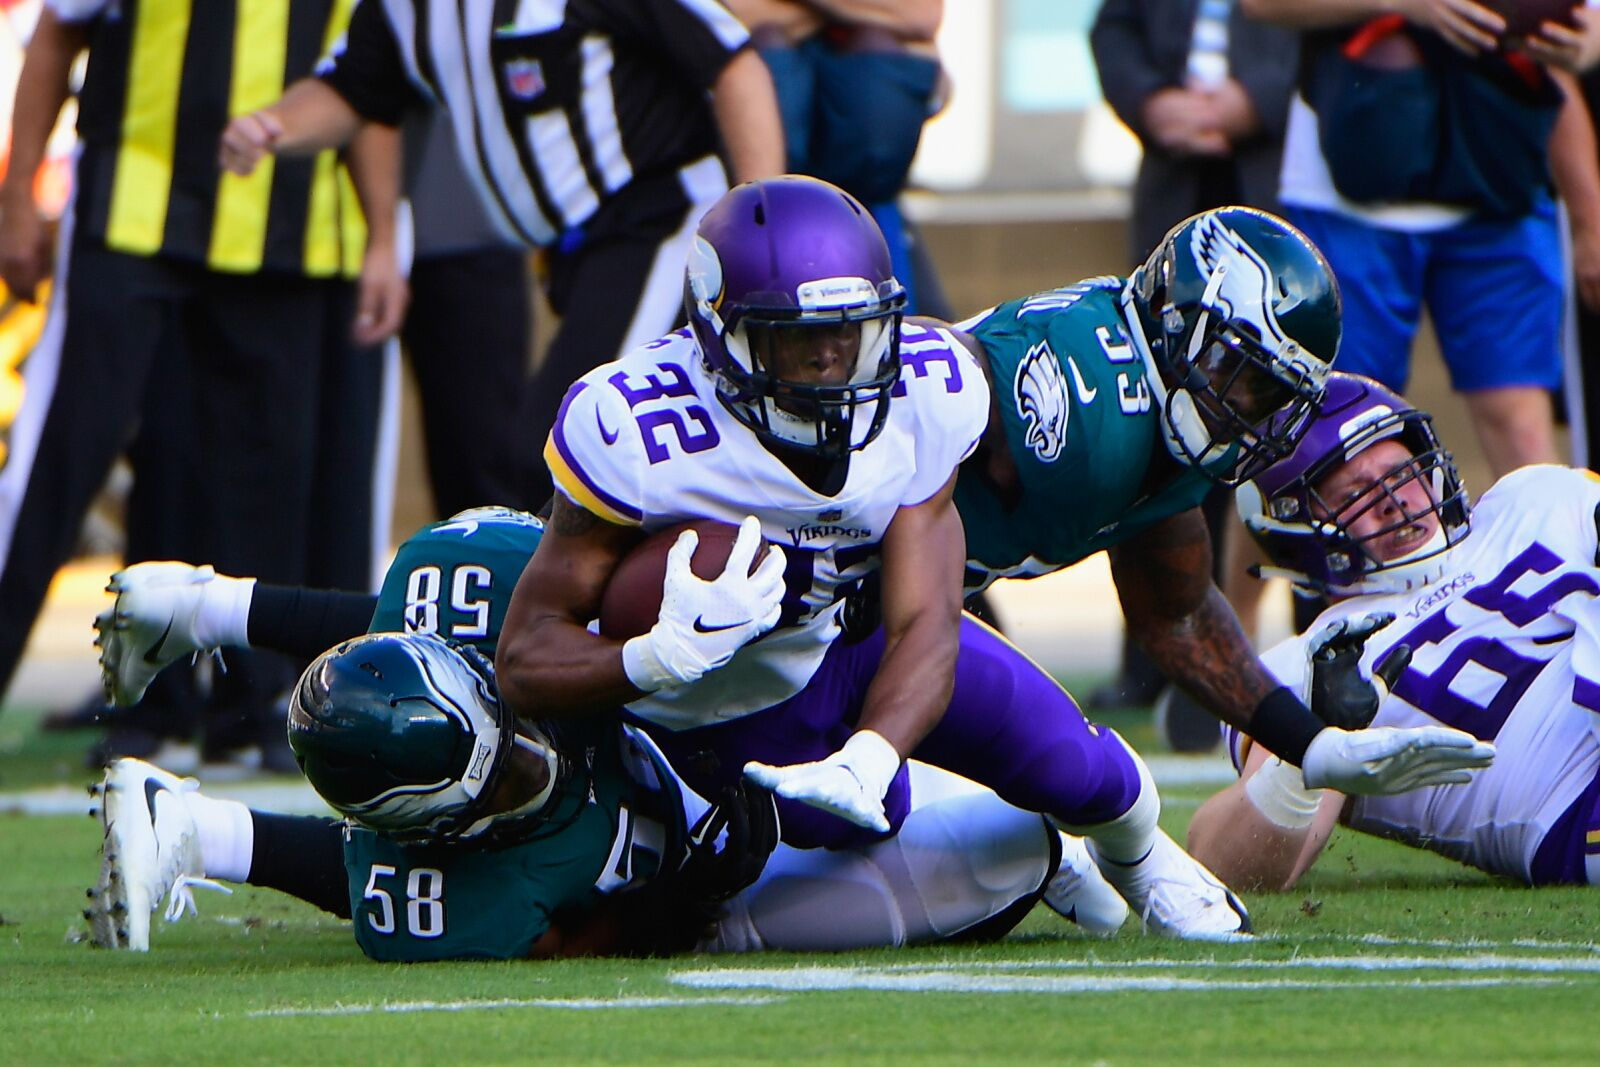 PHILADELPHIA, PA - OCTOBER 07: Running back Roc Thomas #32 of the Minnesota Vikings is tackled by linebacker Jordan Hicks #58 and linebacker Nigel Bradham #53 of the Philadelphia Eagles during the first quarter at Lincoln Financial Field on October 7, 2018 in Philadelphia, Pennsylvania. (Photo by Corey Perrine/Getty Images)